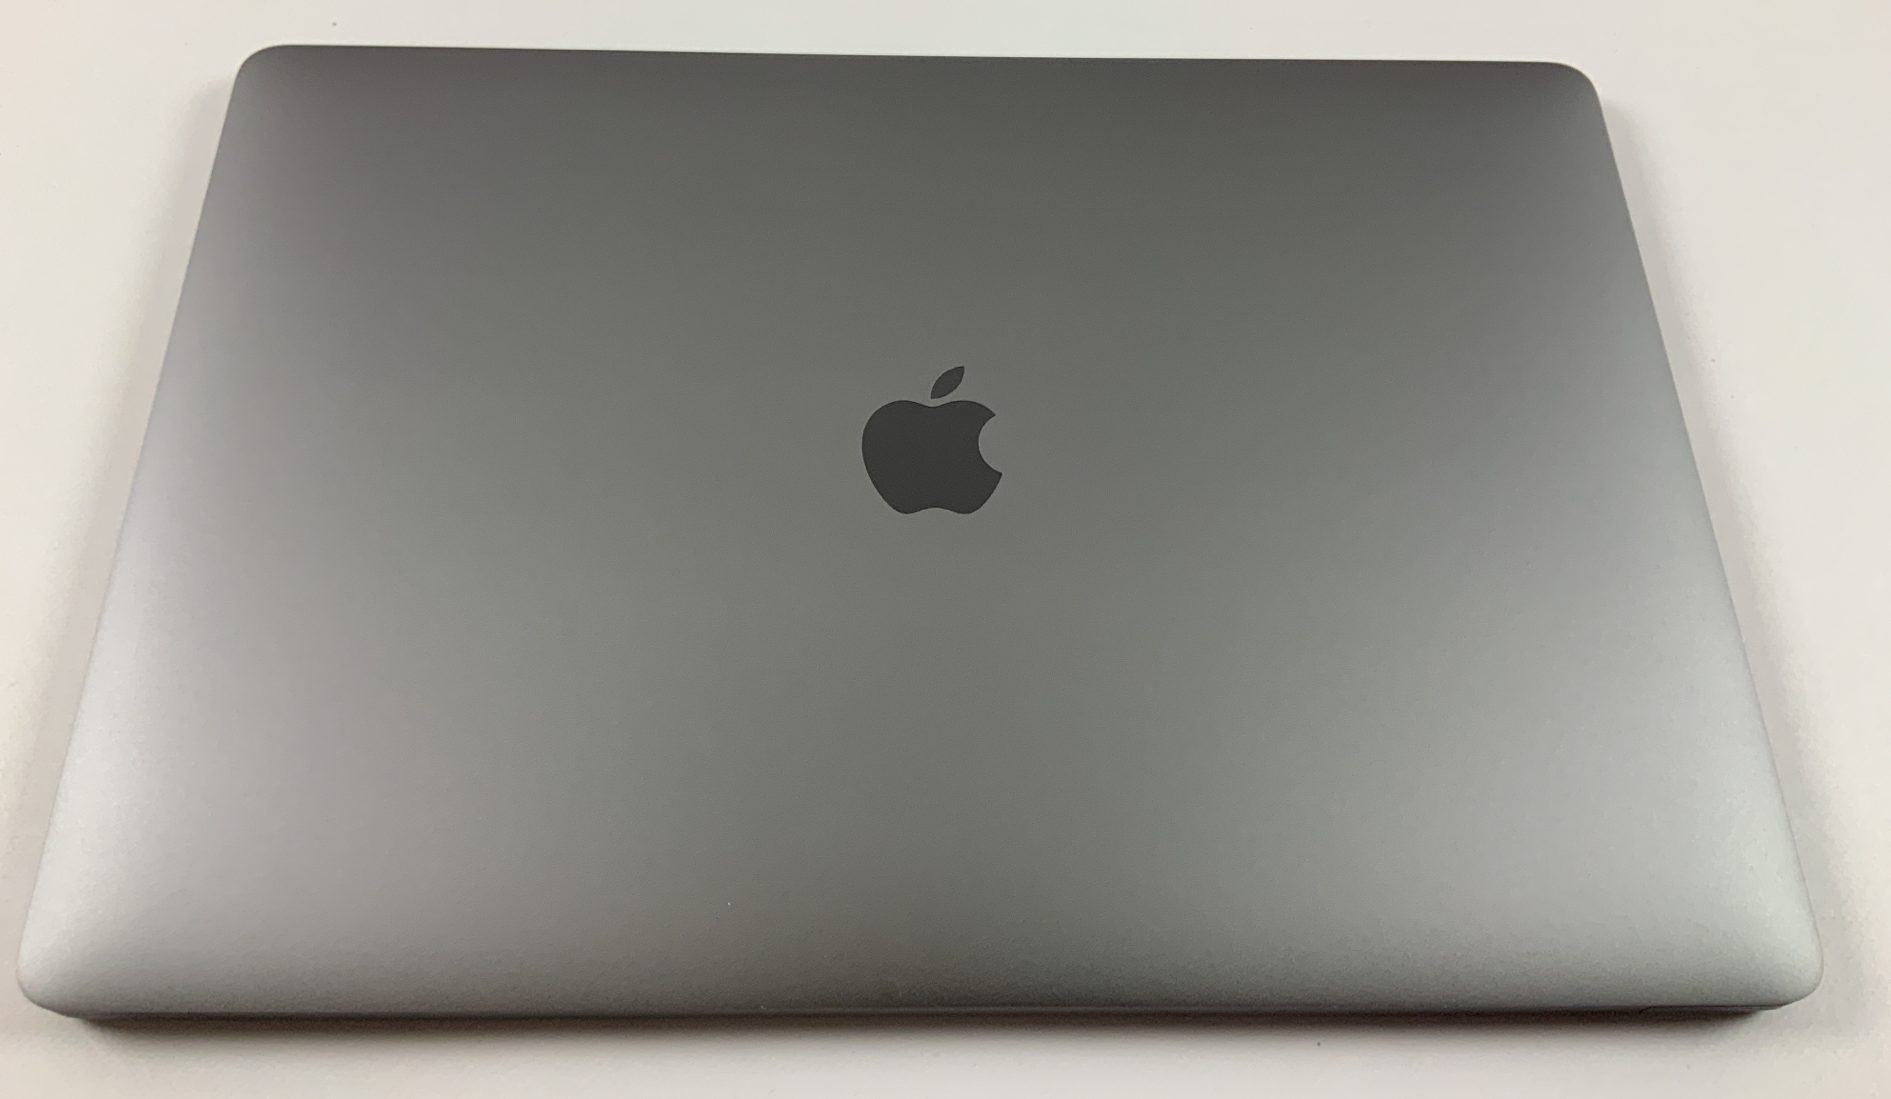 "MacBook Pro 15"" Touch Bar Late 2016 (Intel Quad-Core i7 2.7 GHz 16 GB RAM 512 GB SSD), Space Gray, Intel Quad-Core i7 2.7 GHz, 16 GB RAM, 512 GB SSD, Afbeelding 2"